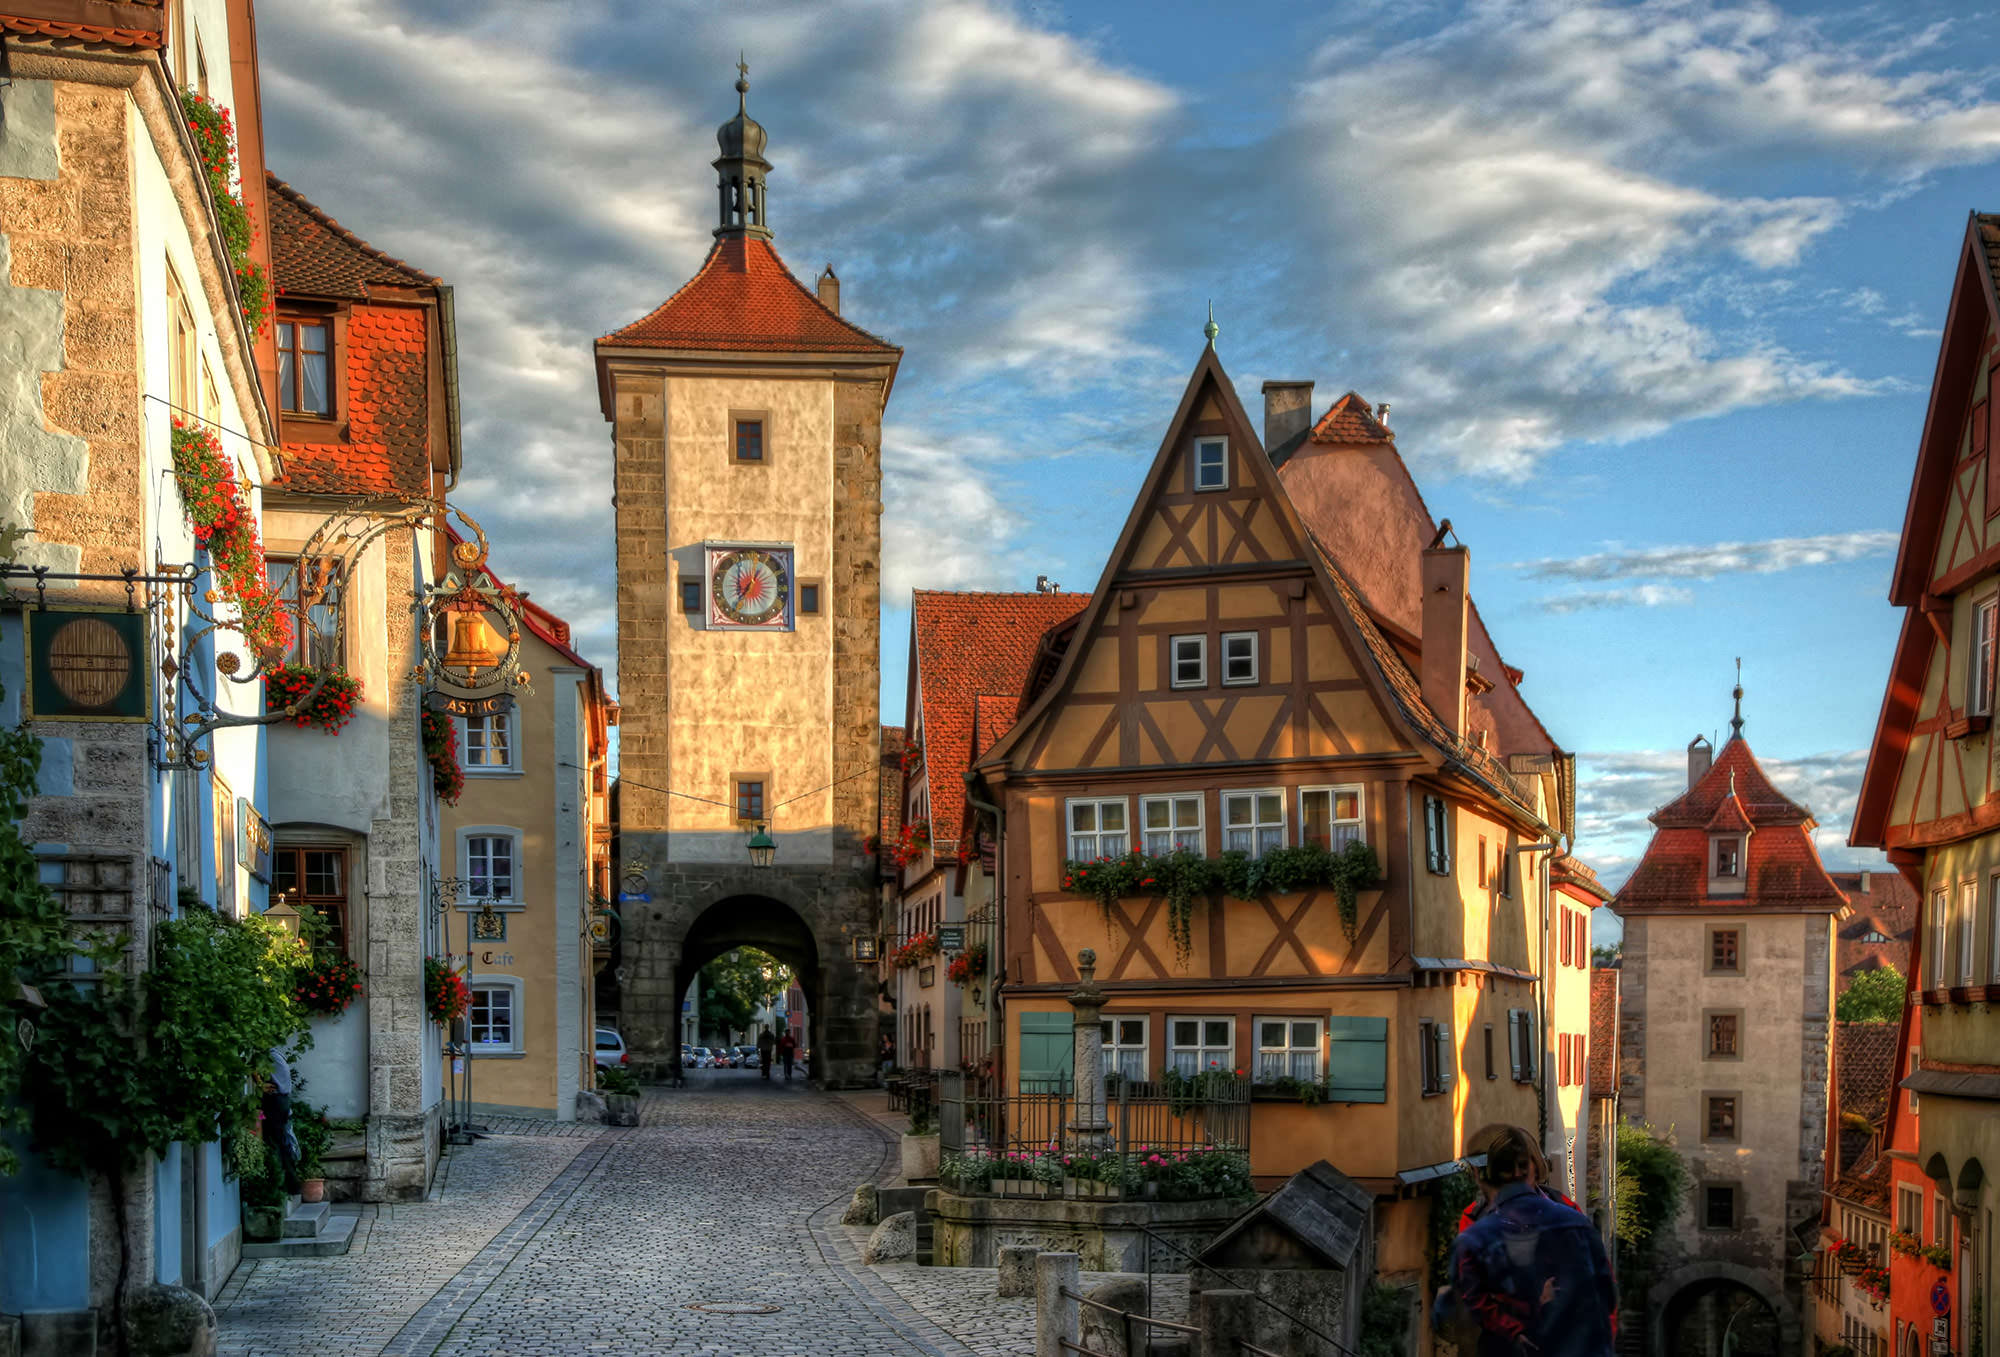 How to germany rothenburg ob der tauber storefront - Rothenburg ob der tauber alemania ...